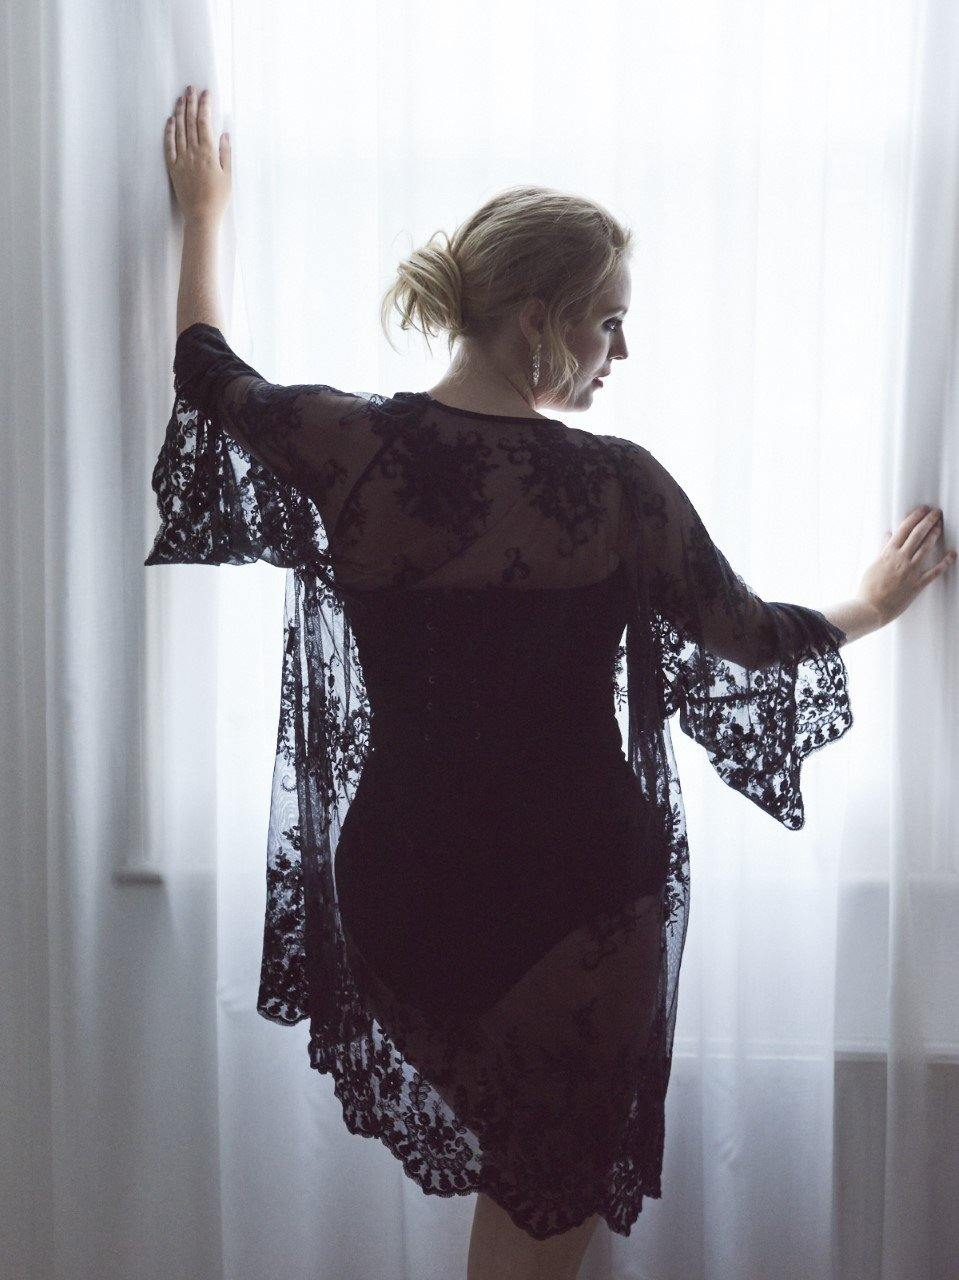 Black Lace Kimono - Luxury Sexy Robe for Boudoir, Evening Out or Beach Cover Up.